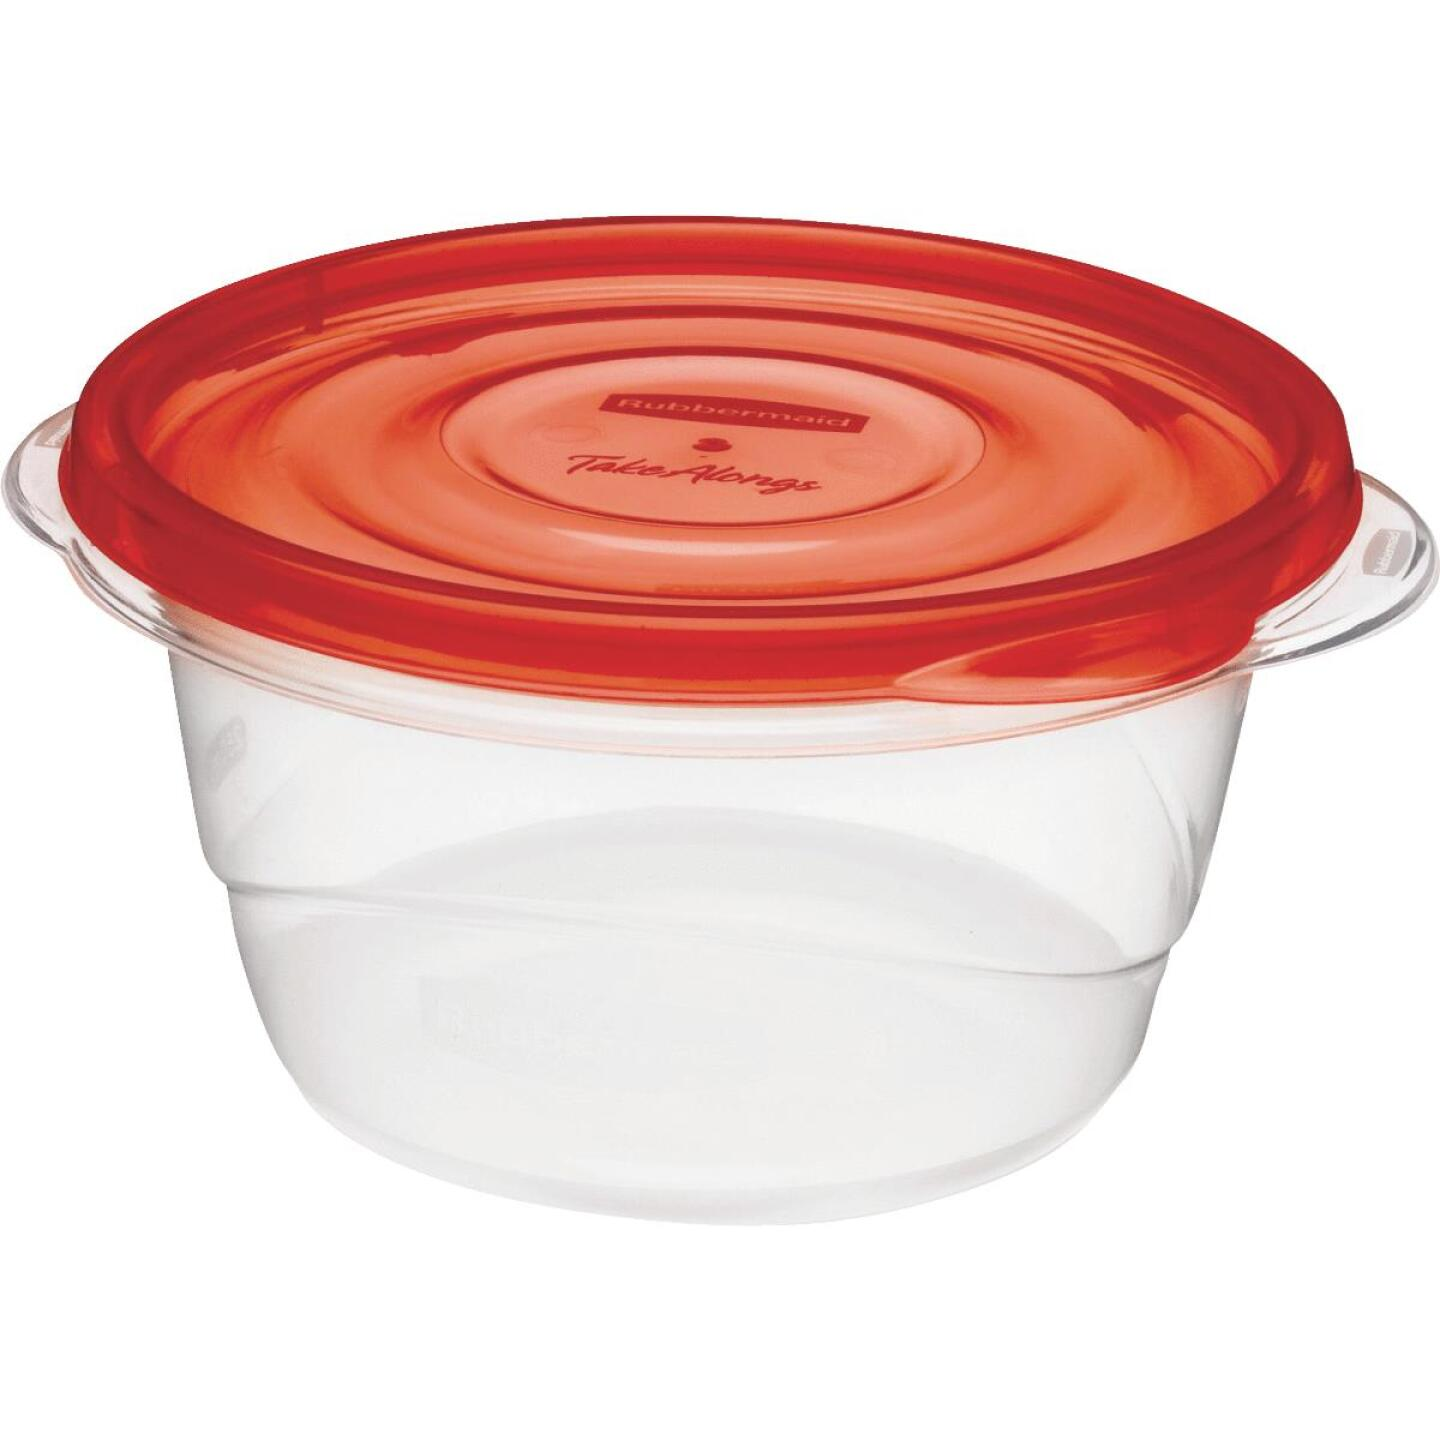 Rubbermaid TakeAlongs 3.5 C. Clear Round Food Storage Container with Lids (4-Pack) Image 2